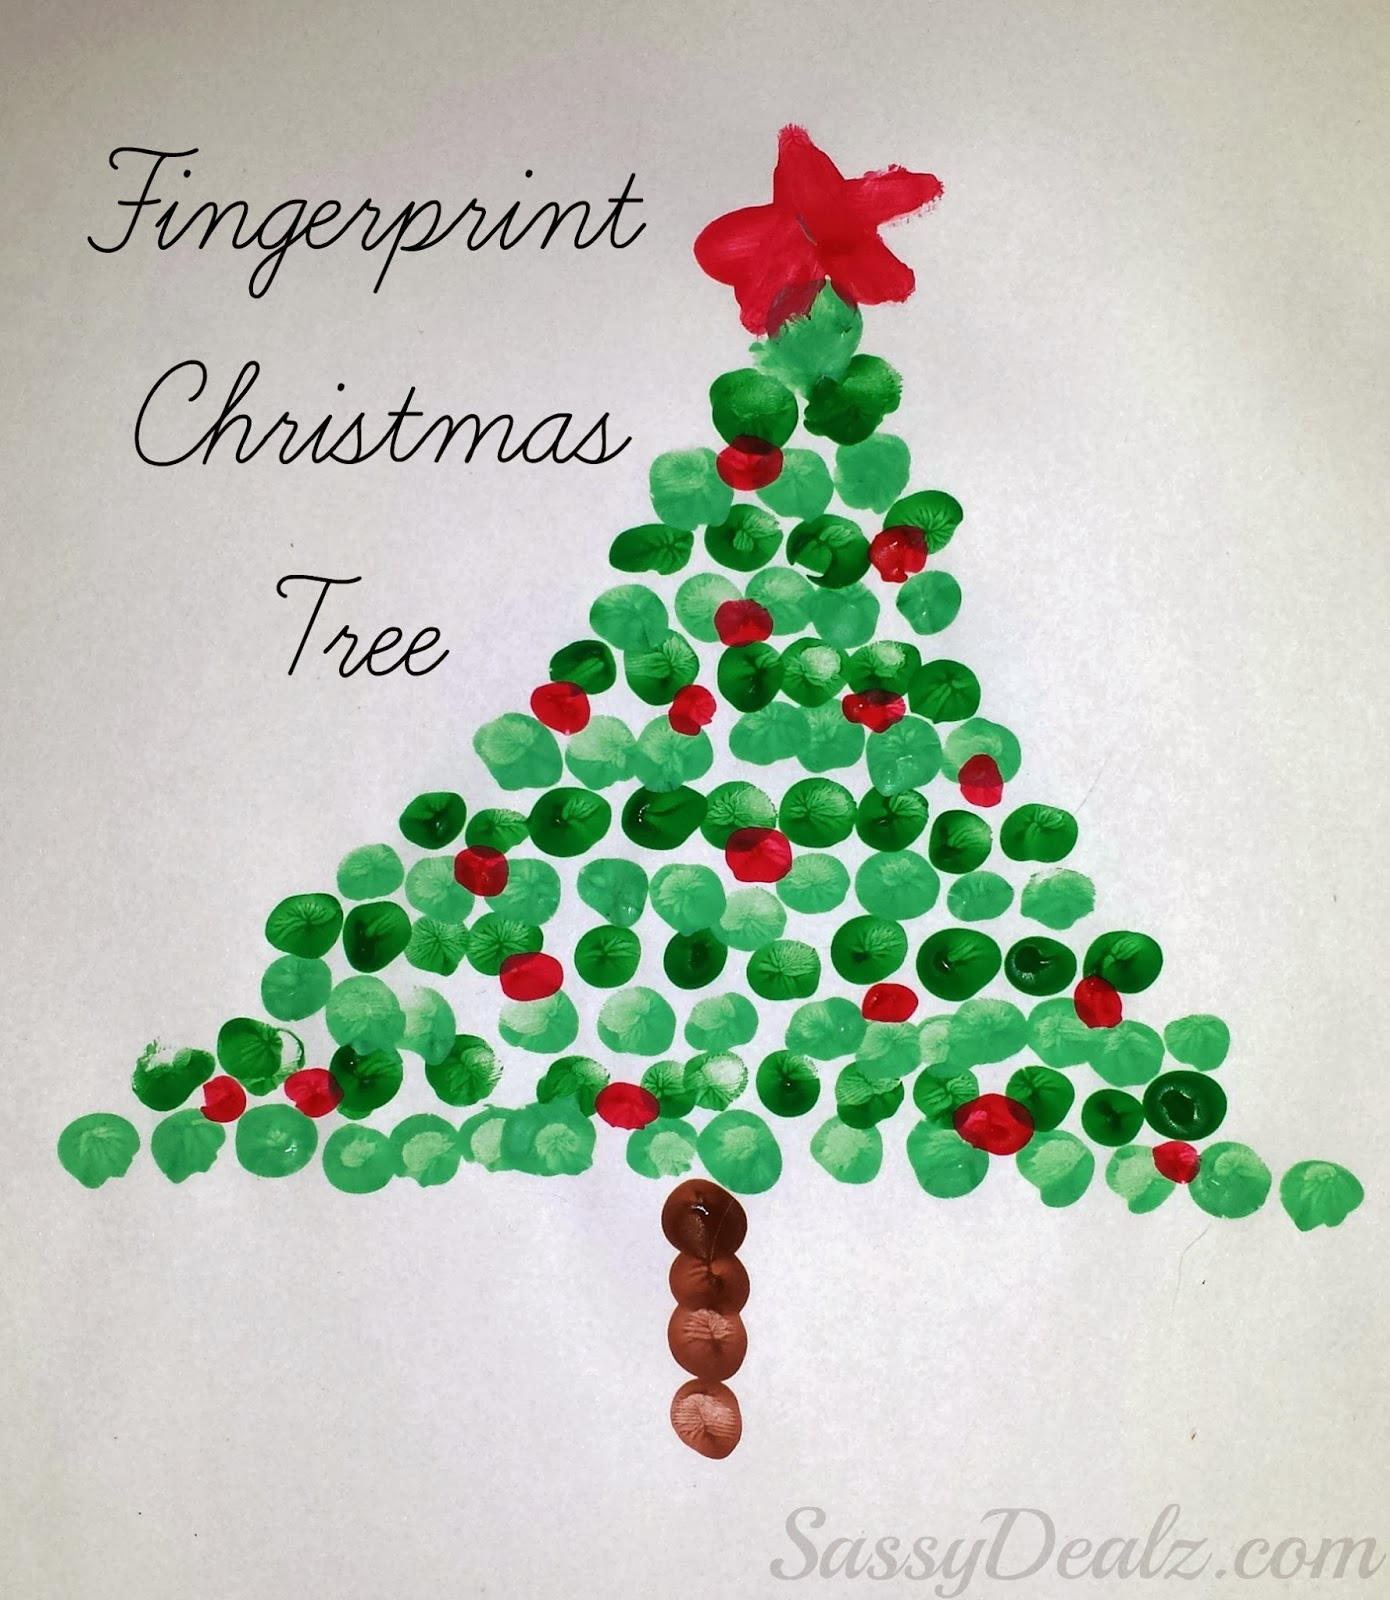 Fingerprint Christmas Tree Craft